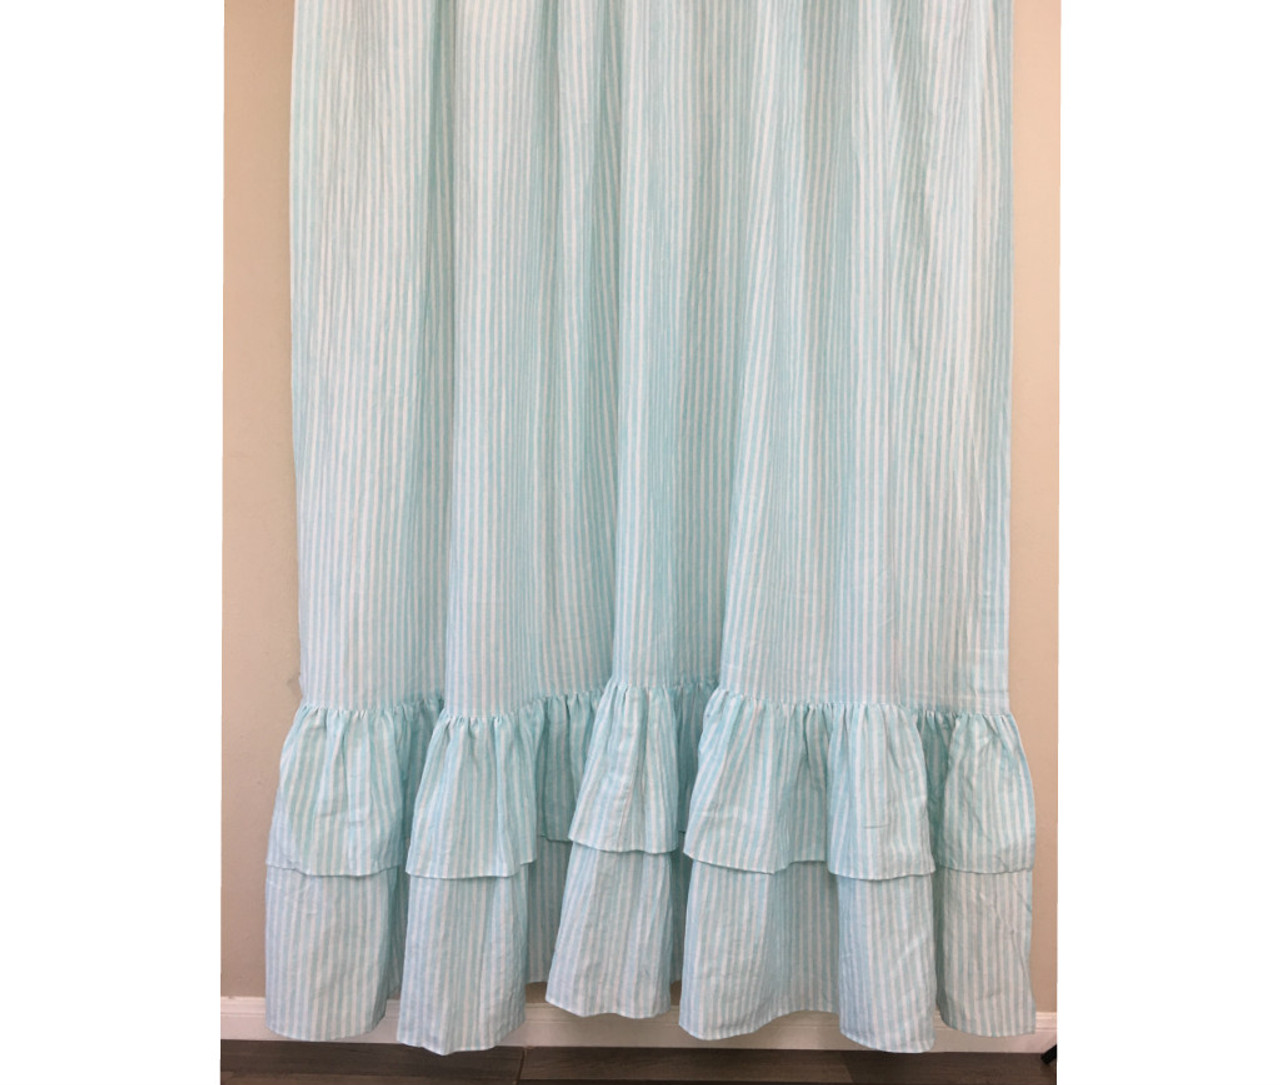 Green And White Striped Shower Curtain With Two Tiered Ruffles Linen Striped Shower Curtain